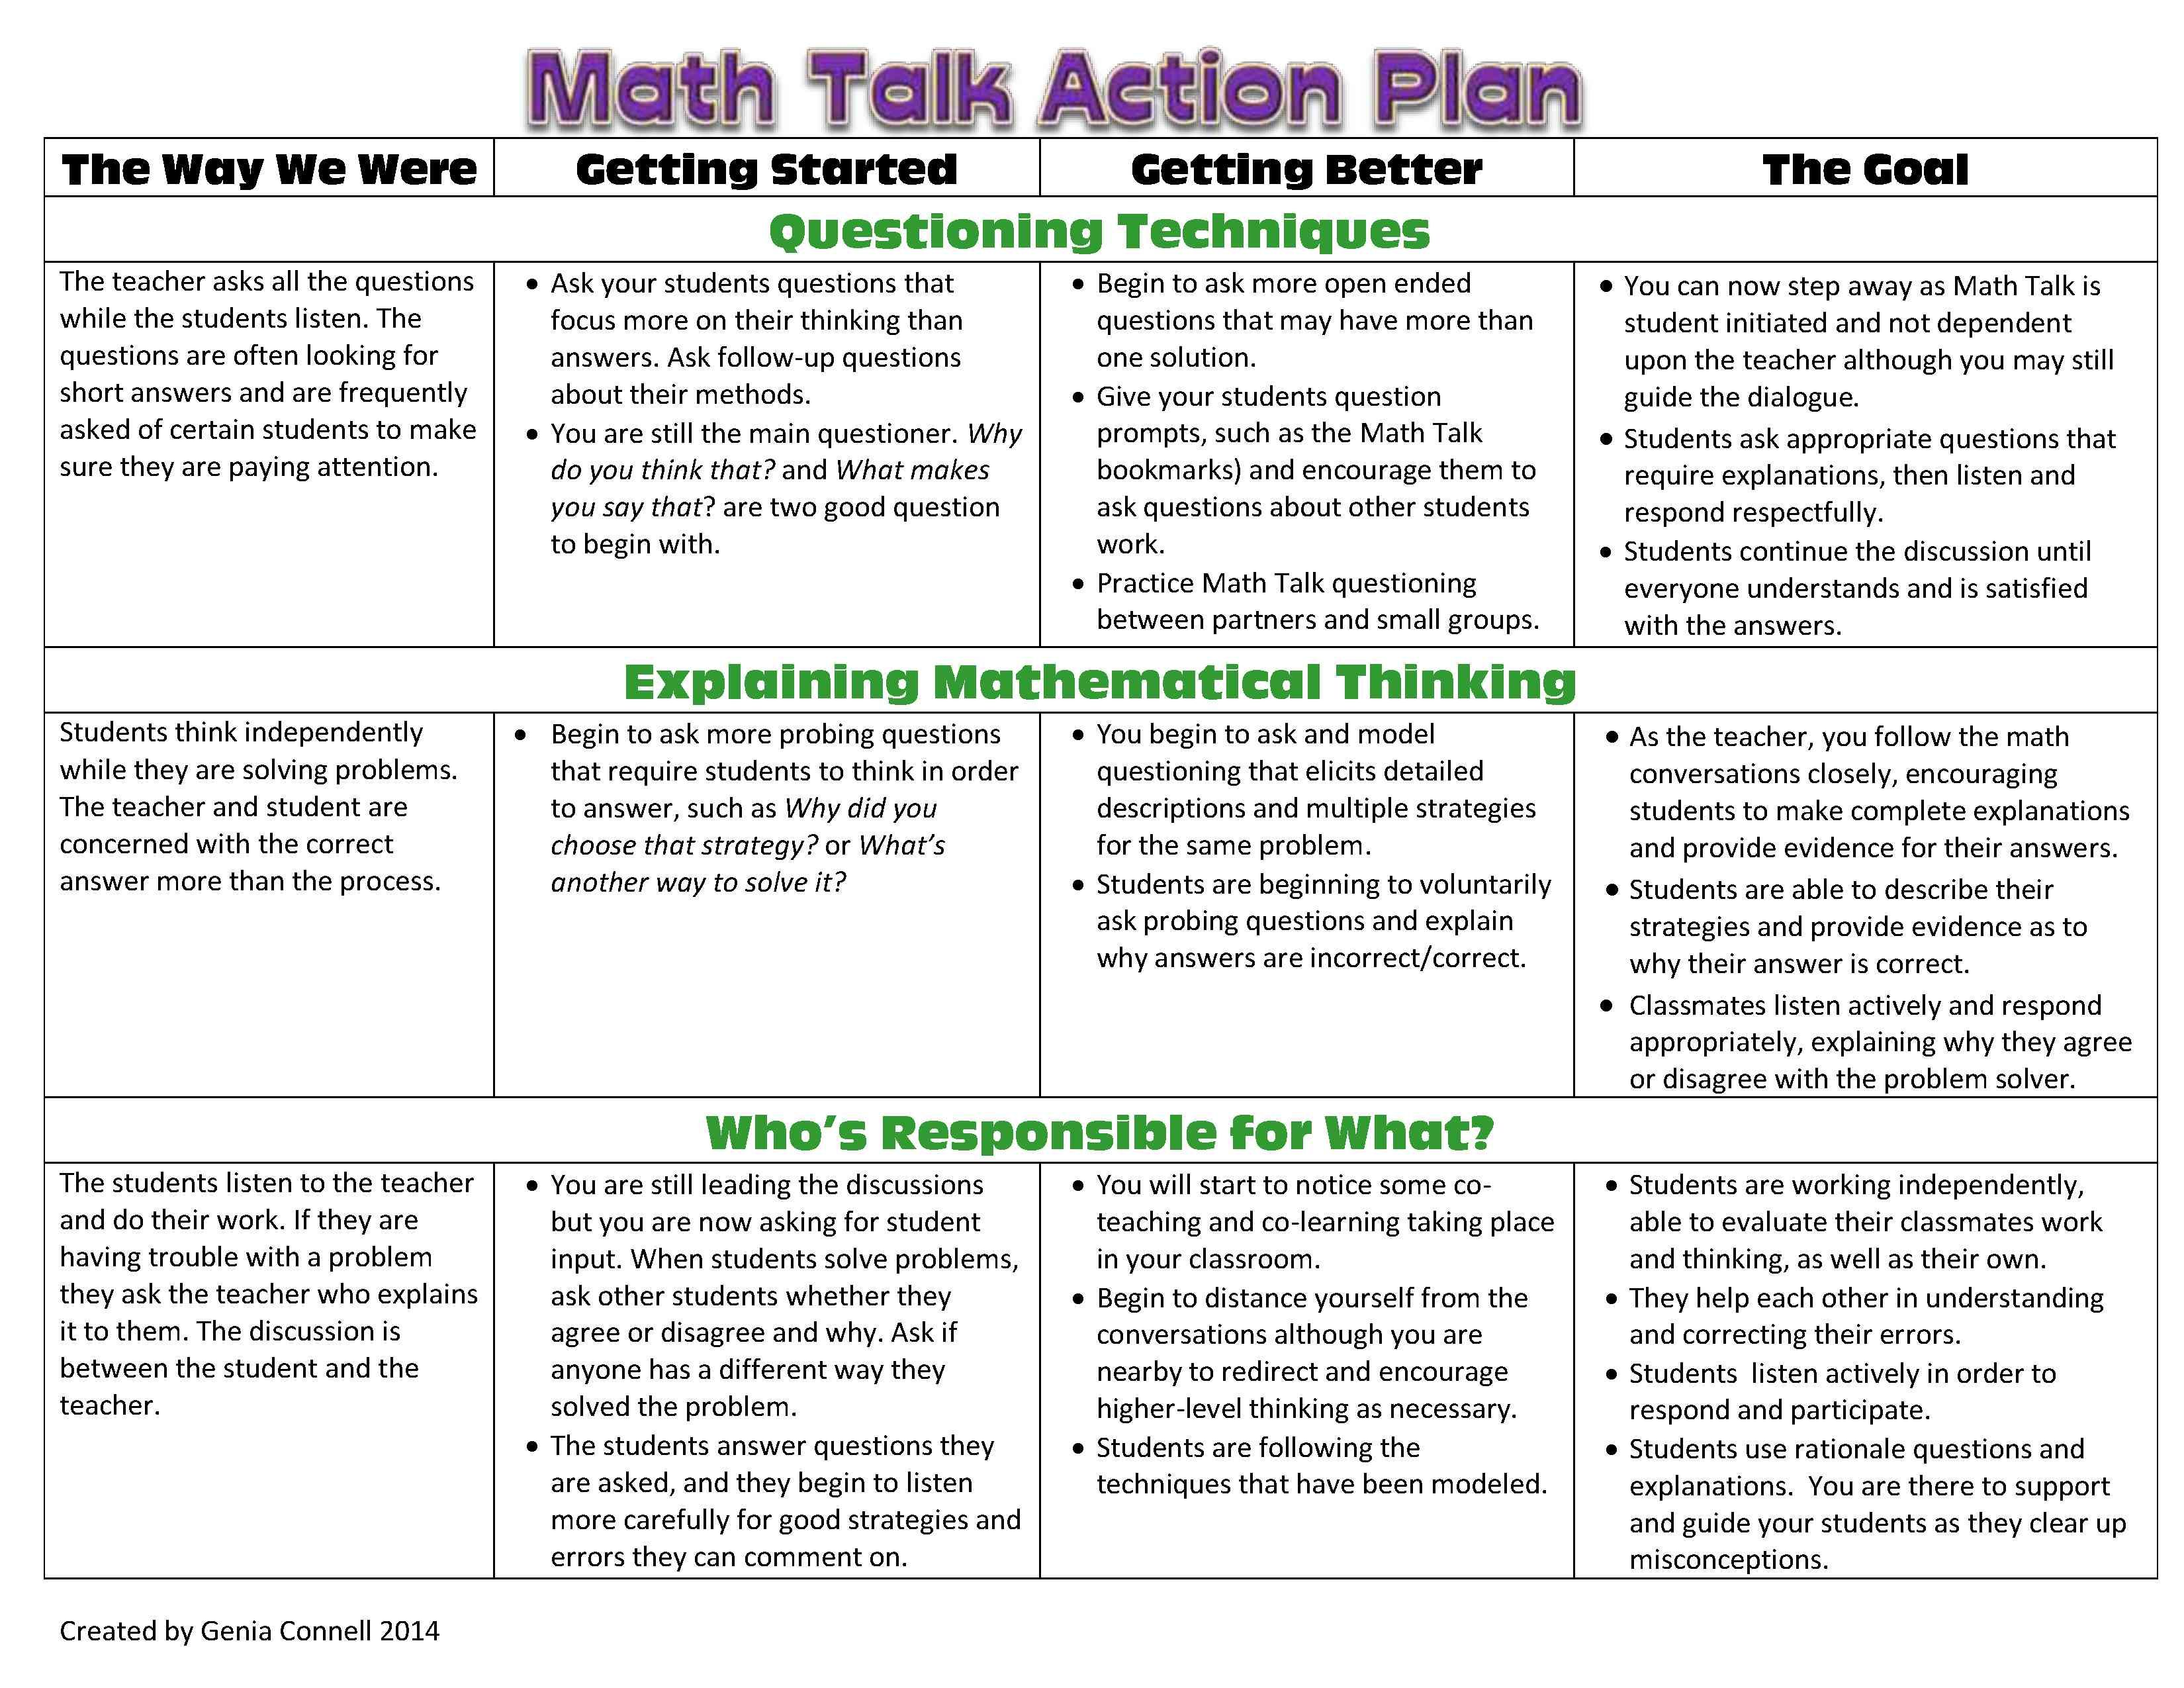 Math Talk 101 I Ve Learned Math Talk Is Simply A Way For Students To Have Meaningful Student To